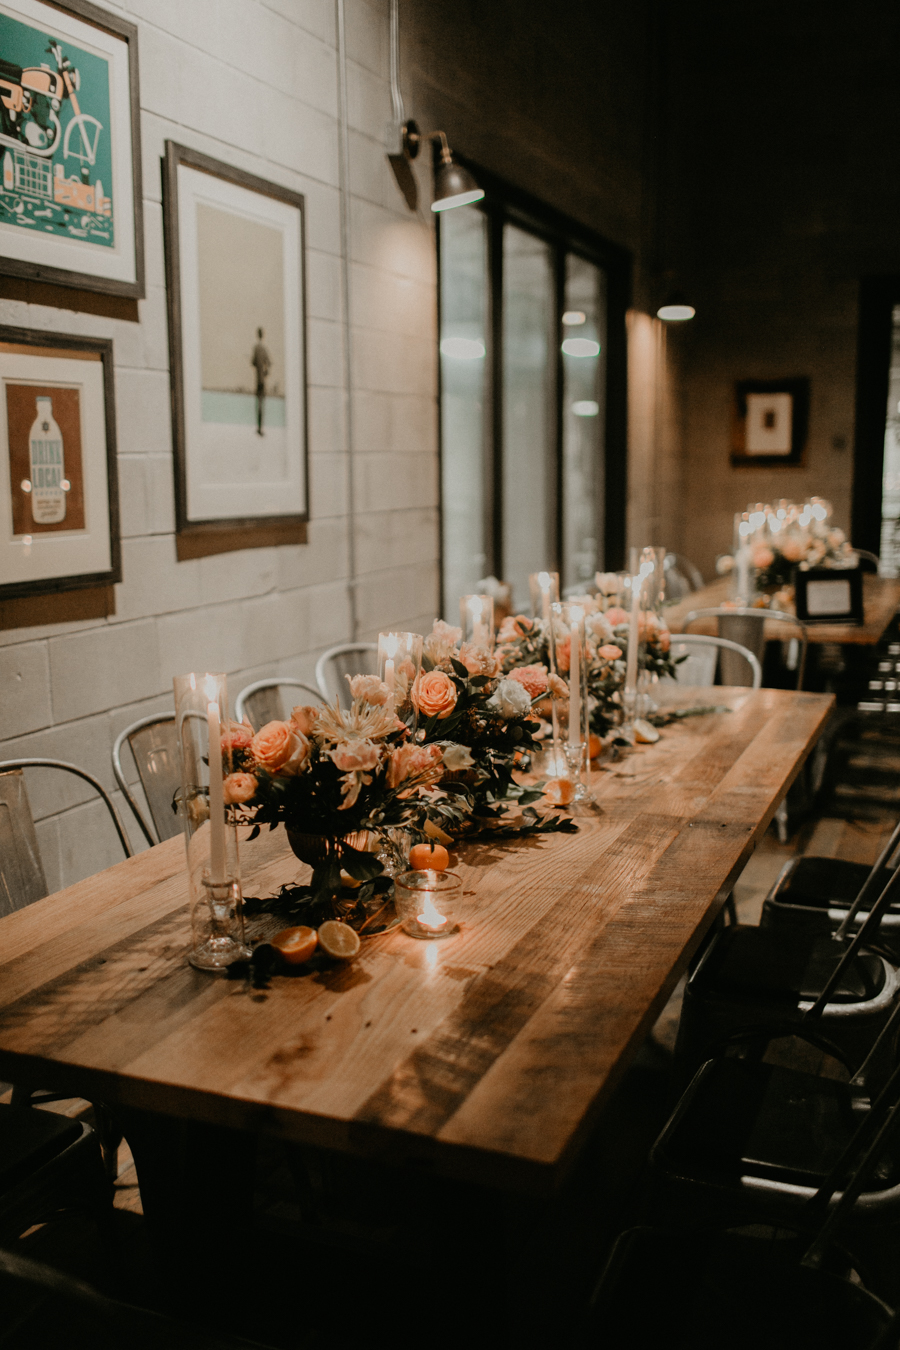 Stephanie And Kent Bailey Tampa Florida Romantic Wedding At Coppertail Brewery in Ybor Florist Fire BHLDN Mis En Place Ibex String Quartet Let Them Eat Cake -96.jpg